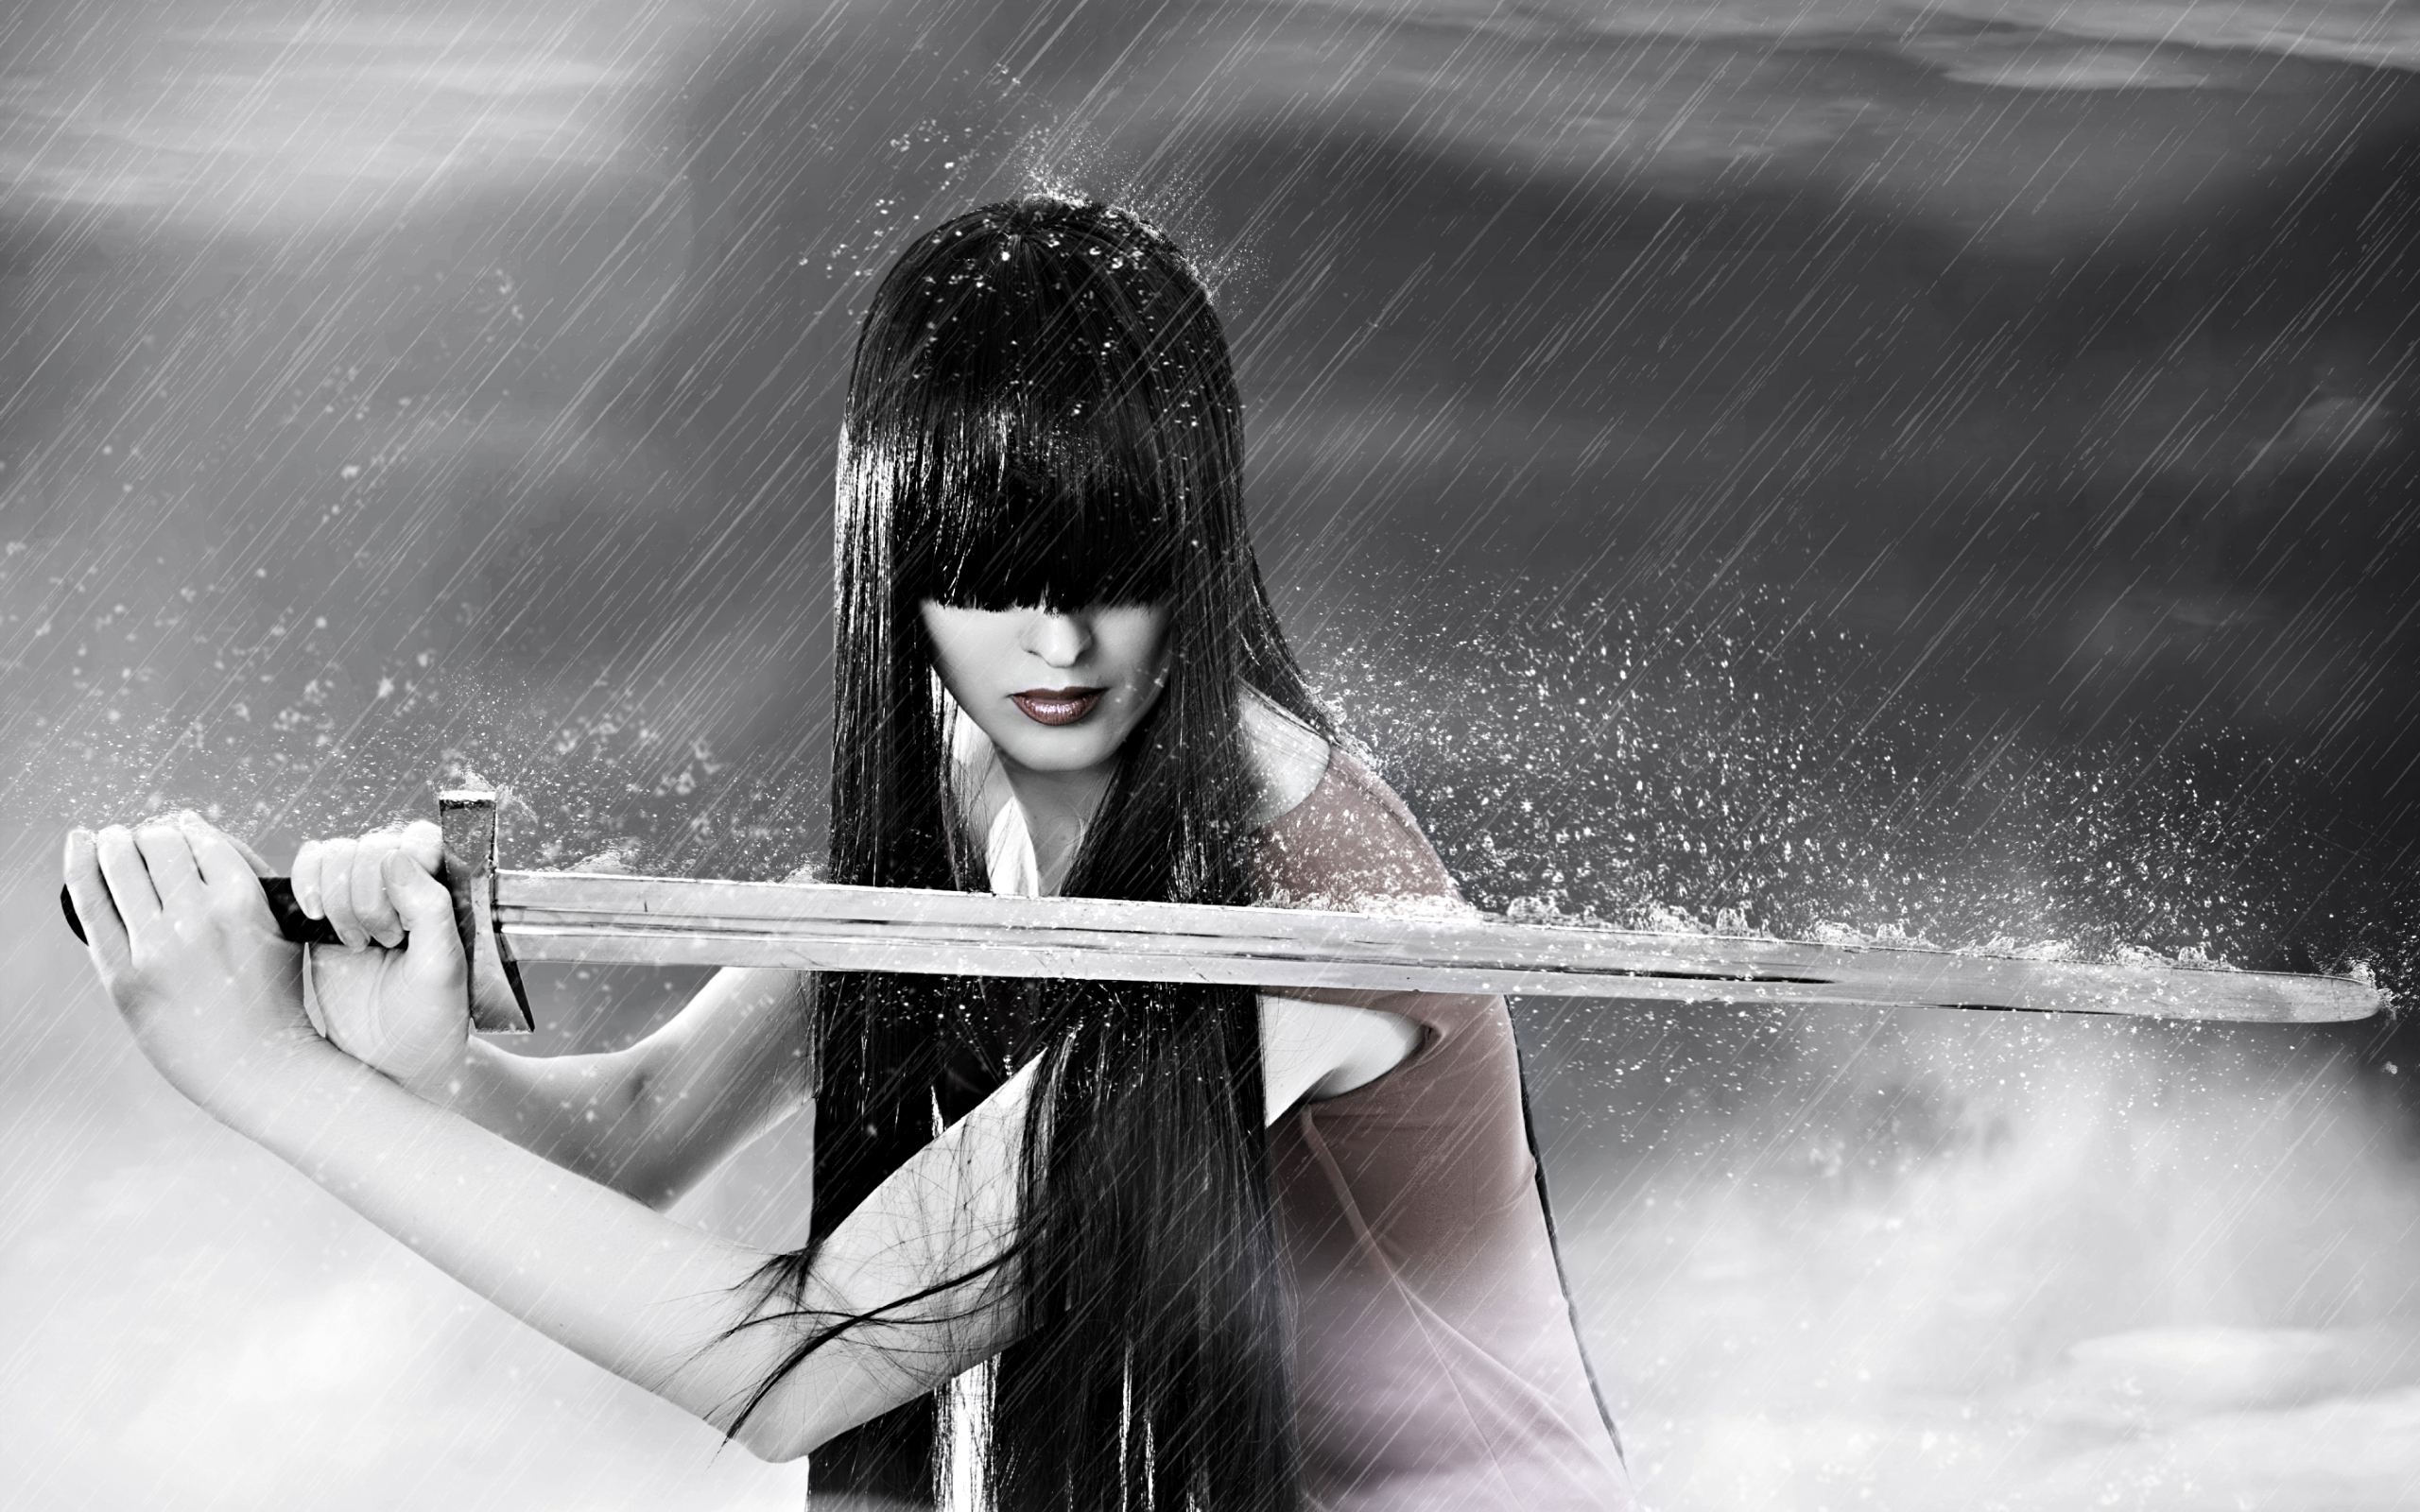 Women warrior full hd wallpaper and background image - Girl with sword wallpaper ...